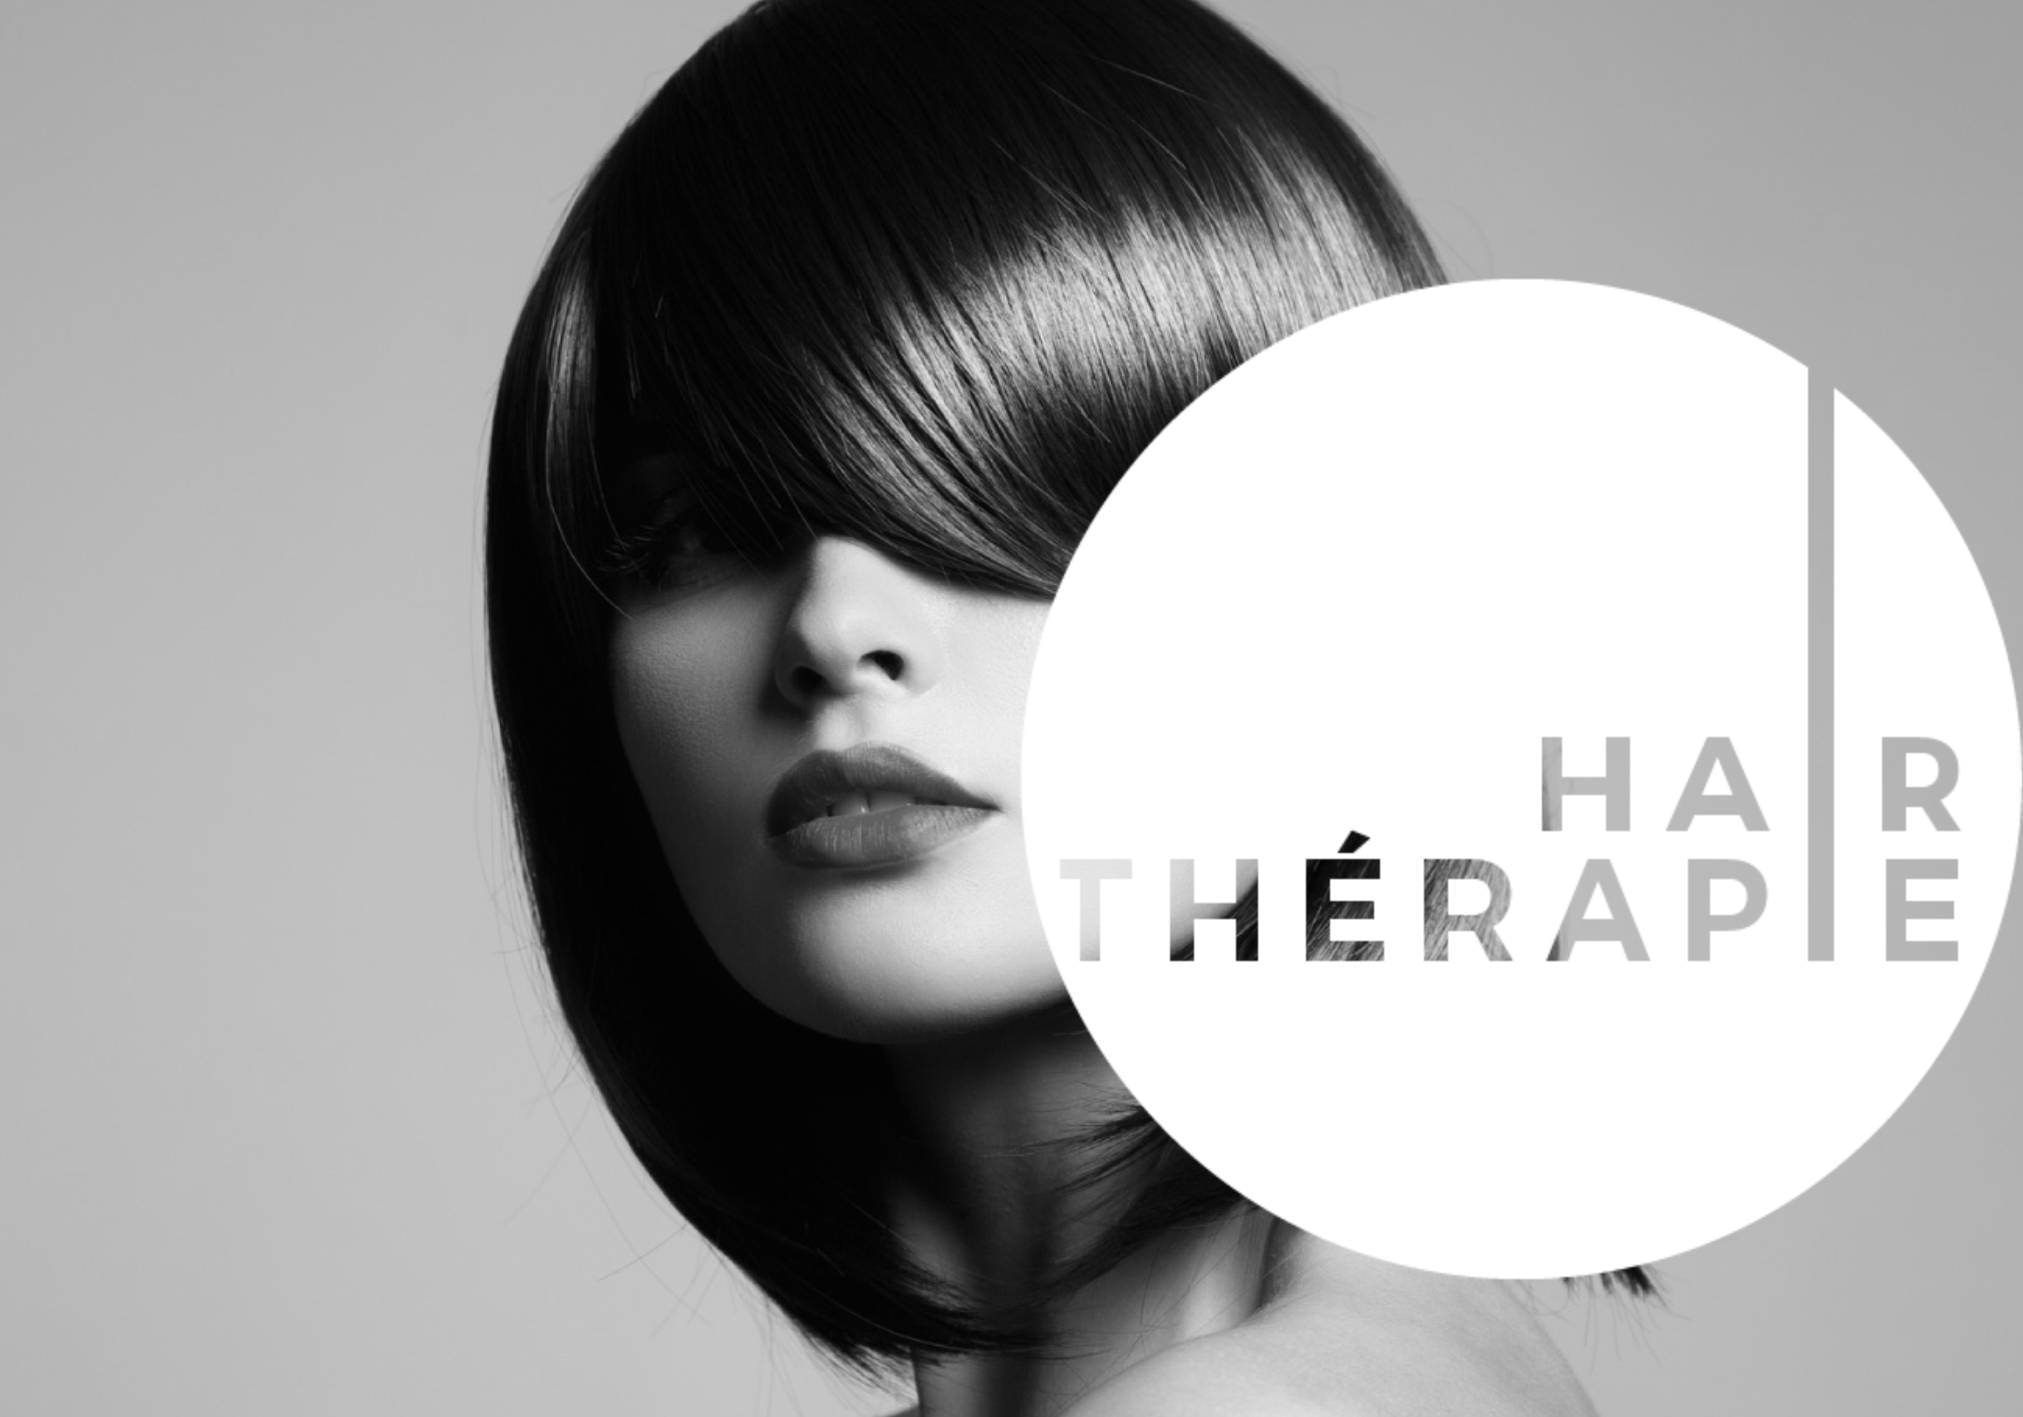 hair therapie landing page white.PNG